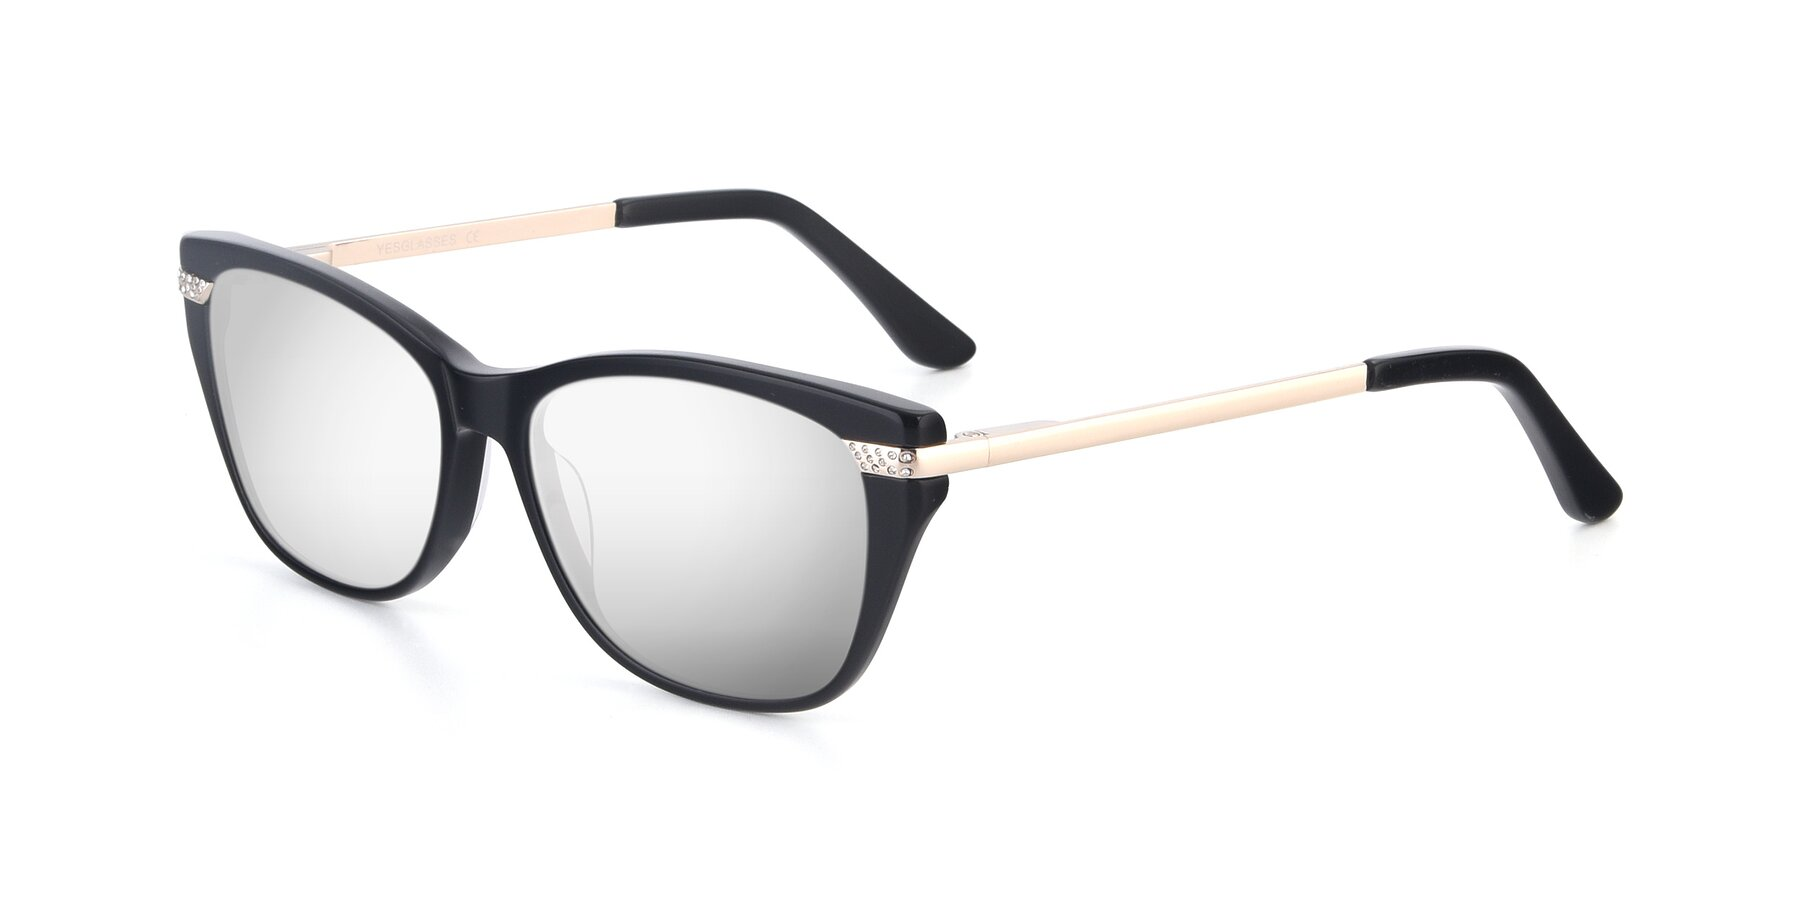 Angle of 17515 in Black with Silver Mirrored Lenses